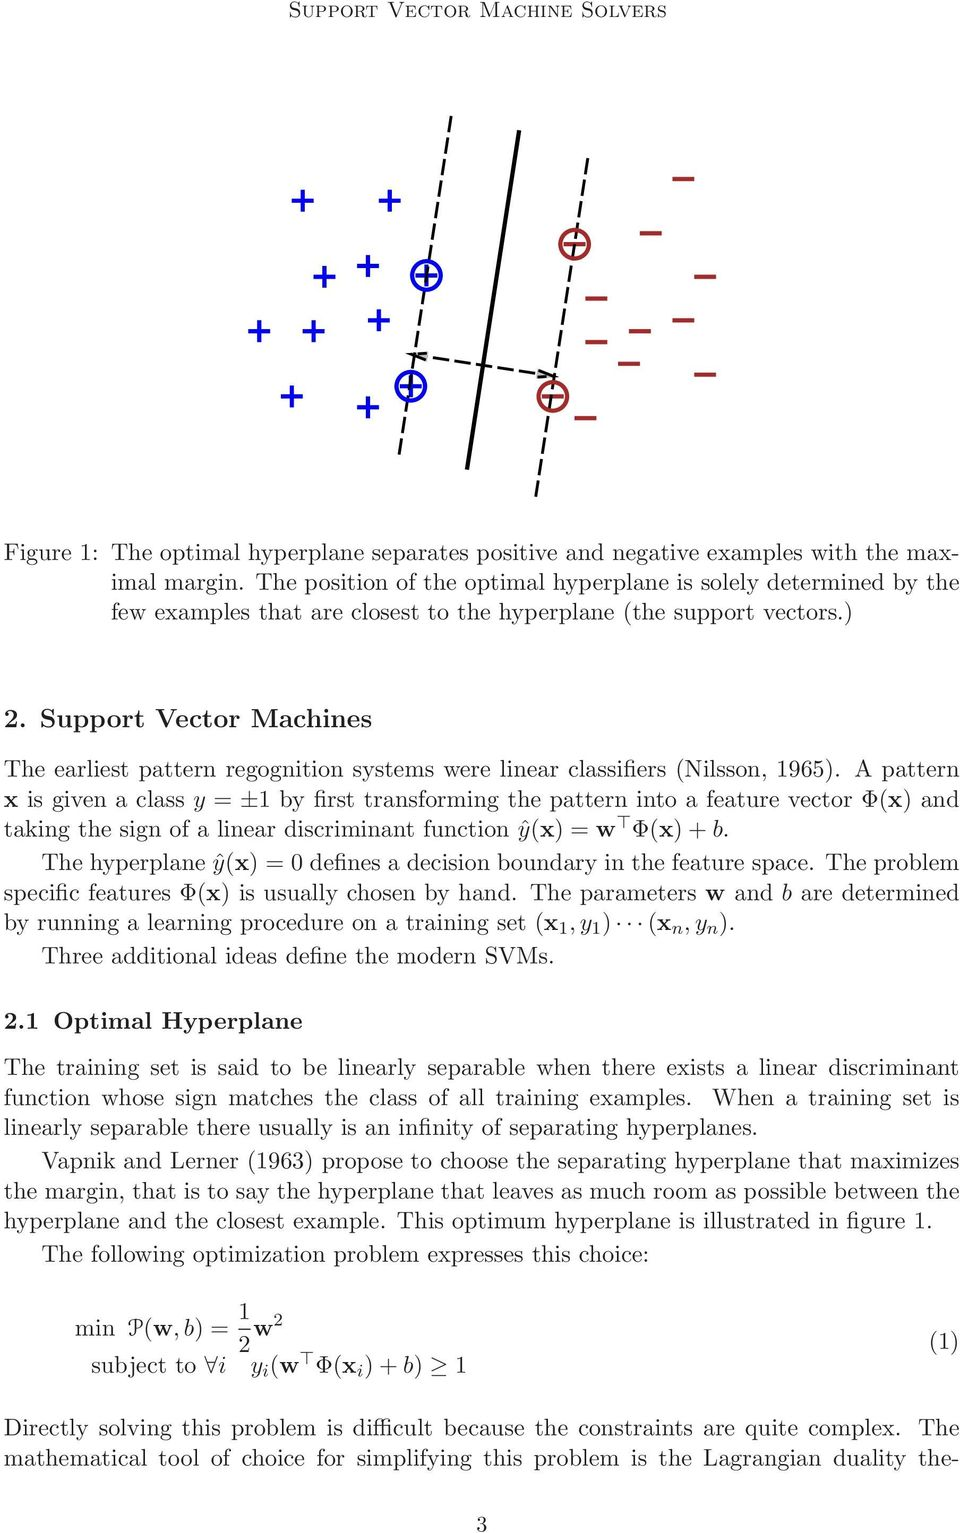 Support Vector Machines The earliest pattern regognition systems were linear classifiers (Nilsson, 1965).